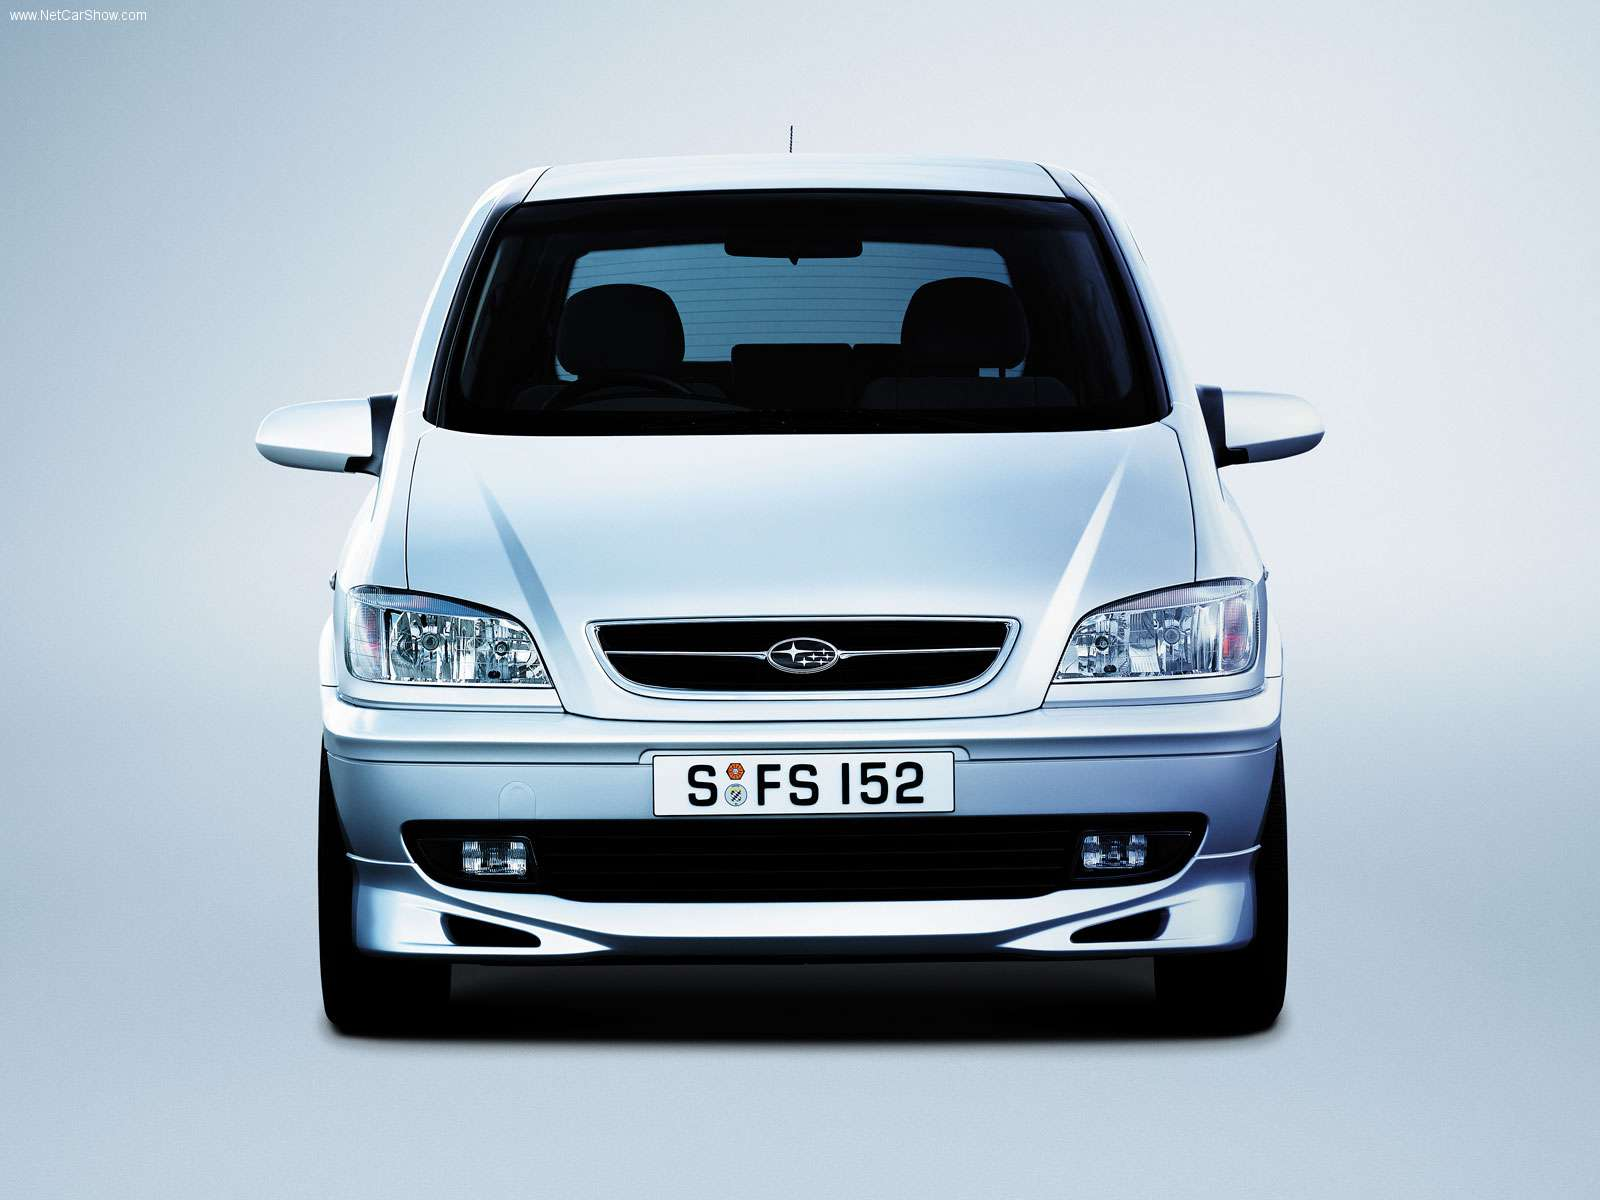 Subaru Traviq Photos Photogallery With 6 Pics Carsbase Com